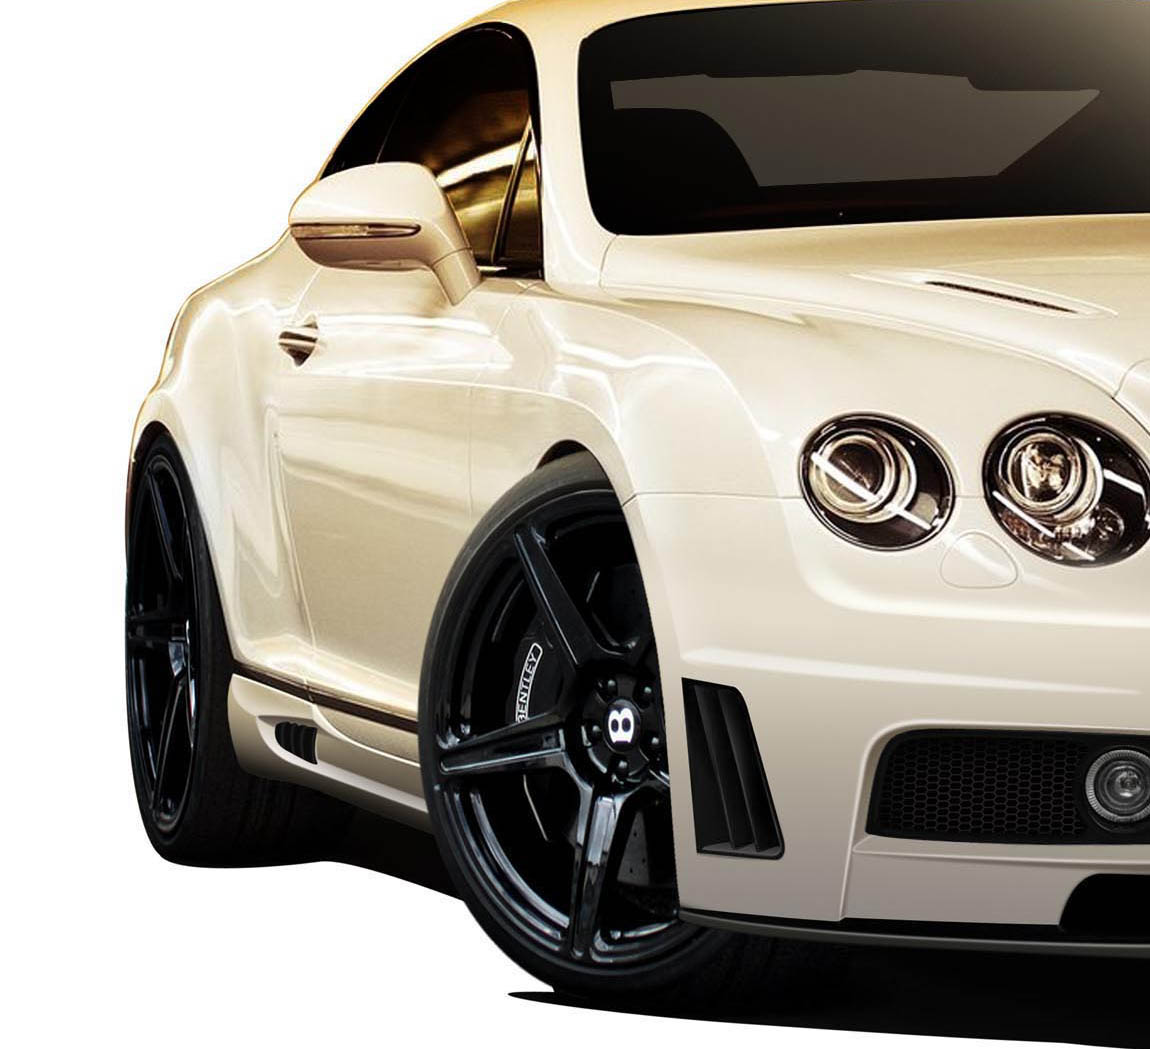 Sideskirts Body Kit For 2005 Bentley Continental